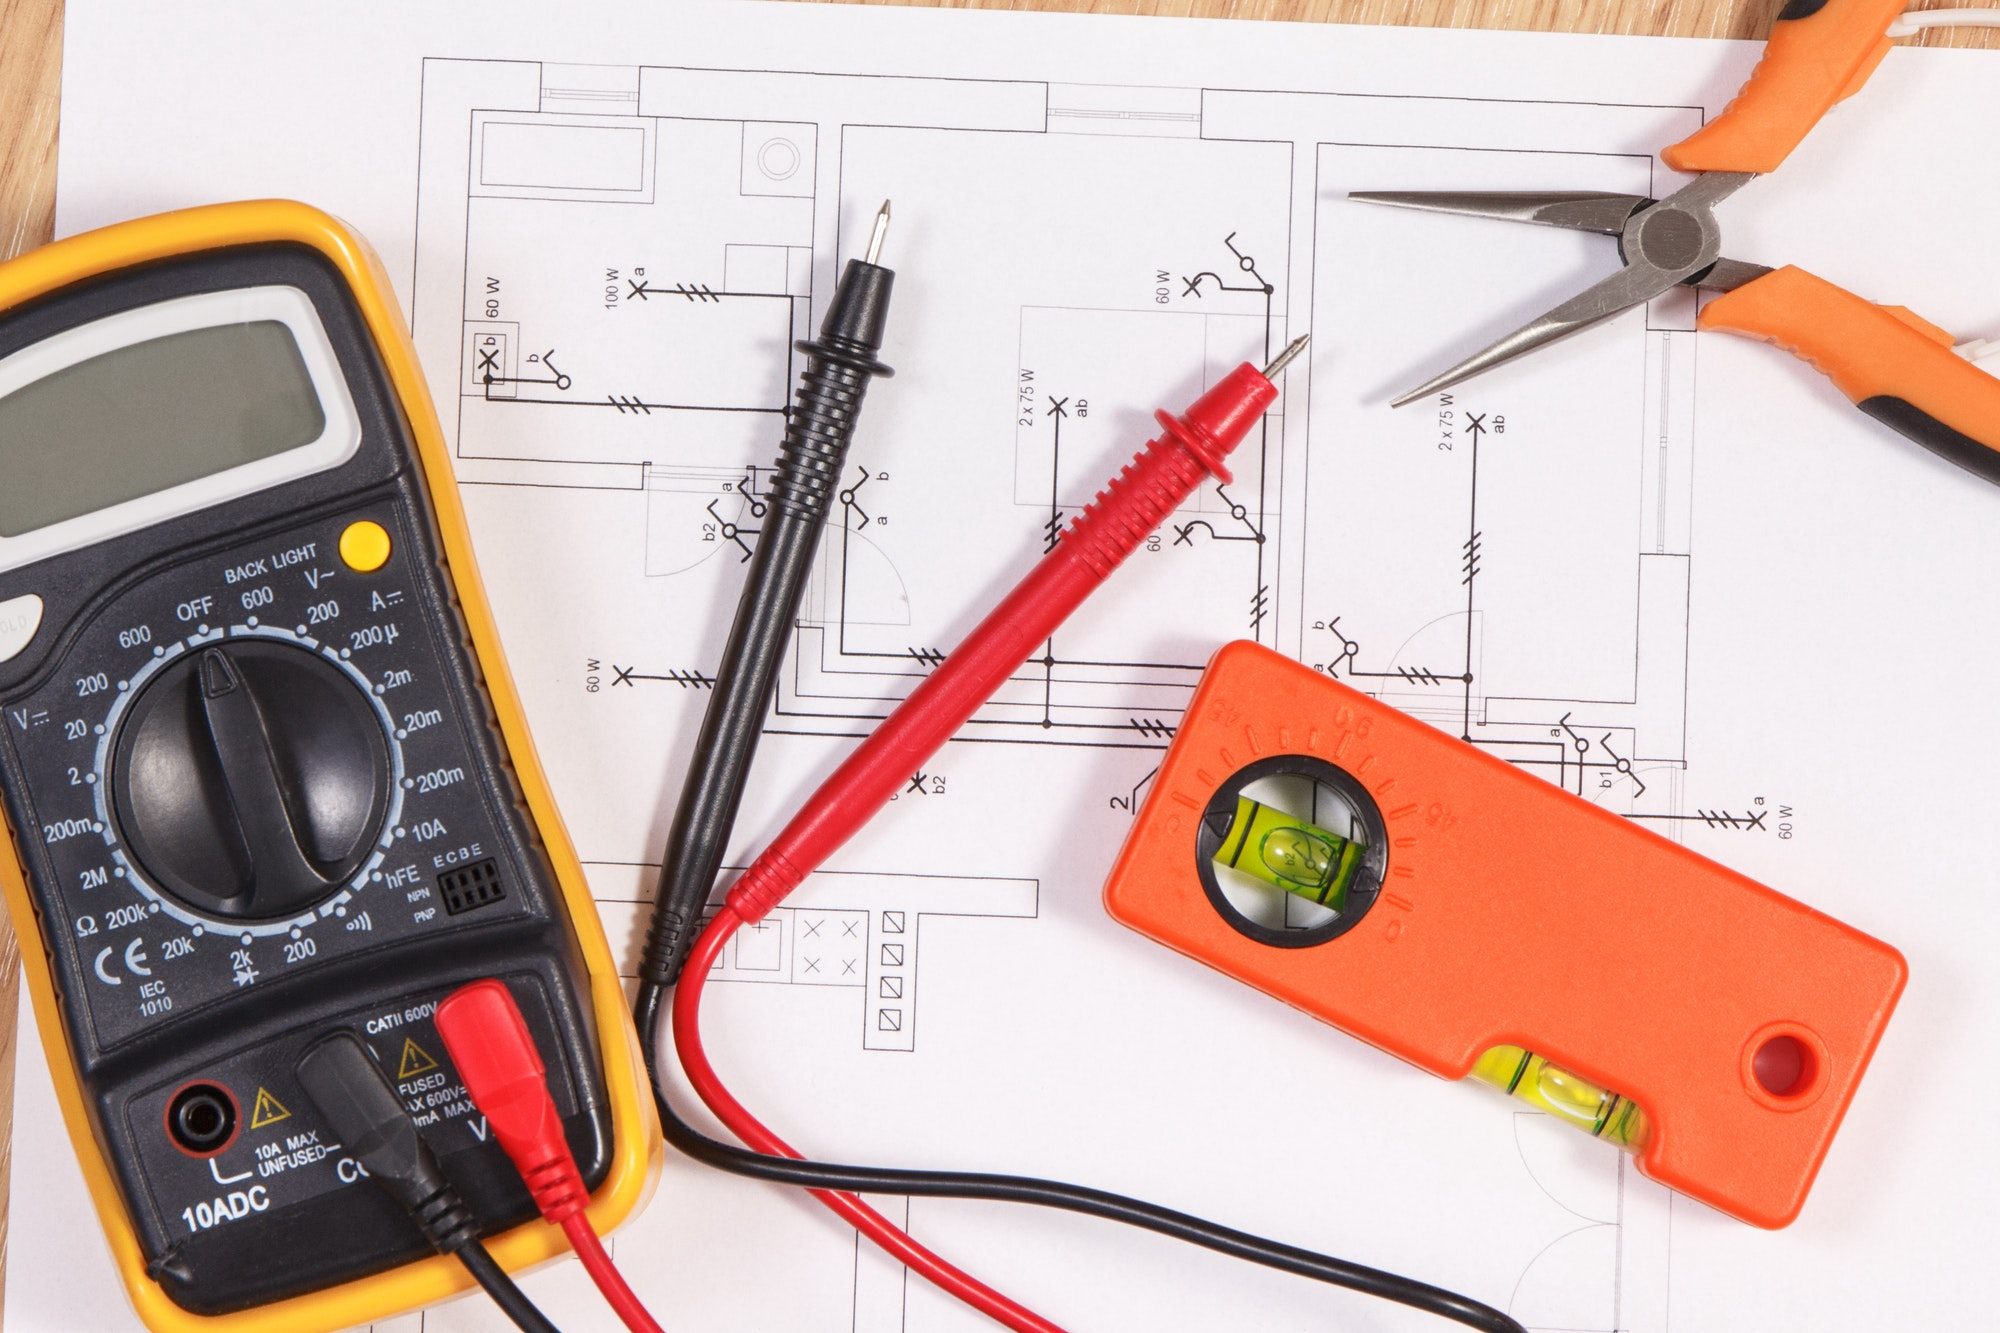 Electrical diagrams, multimeter for measurement in electrical installation